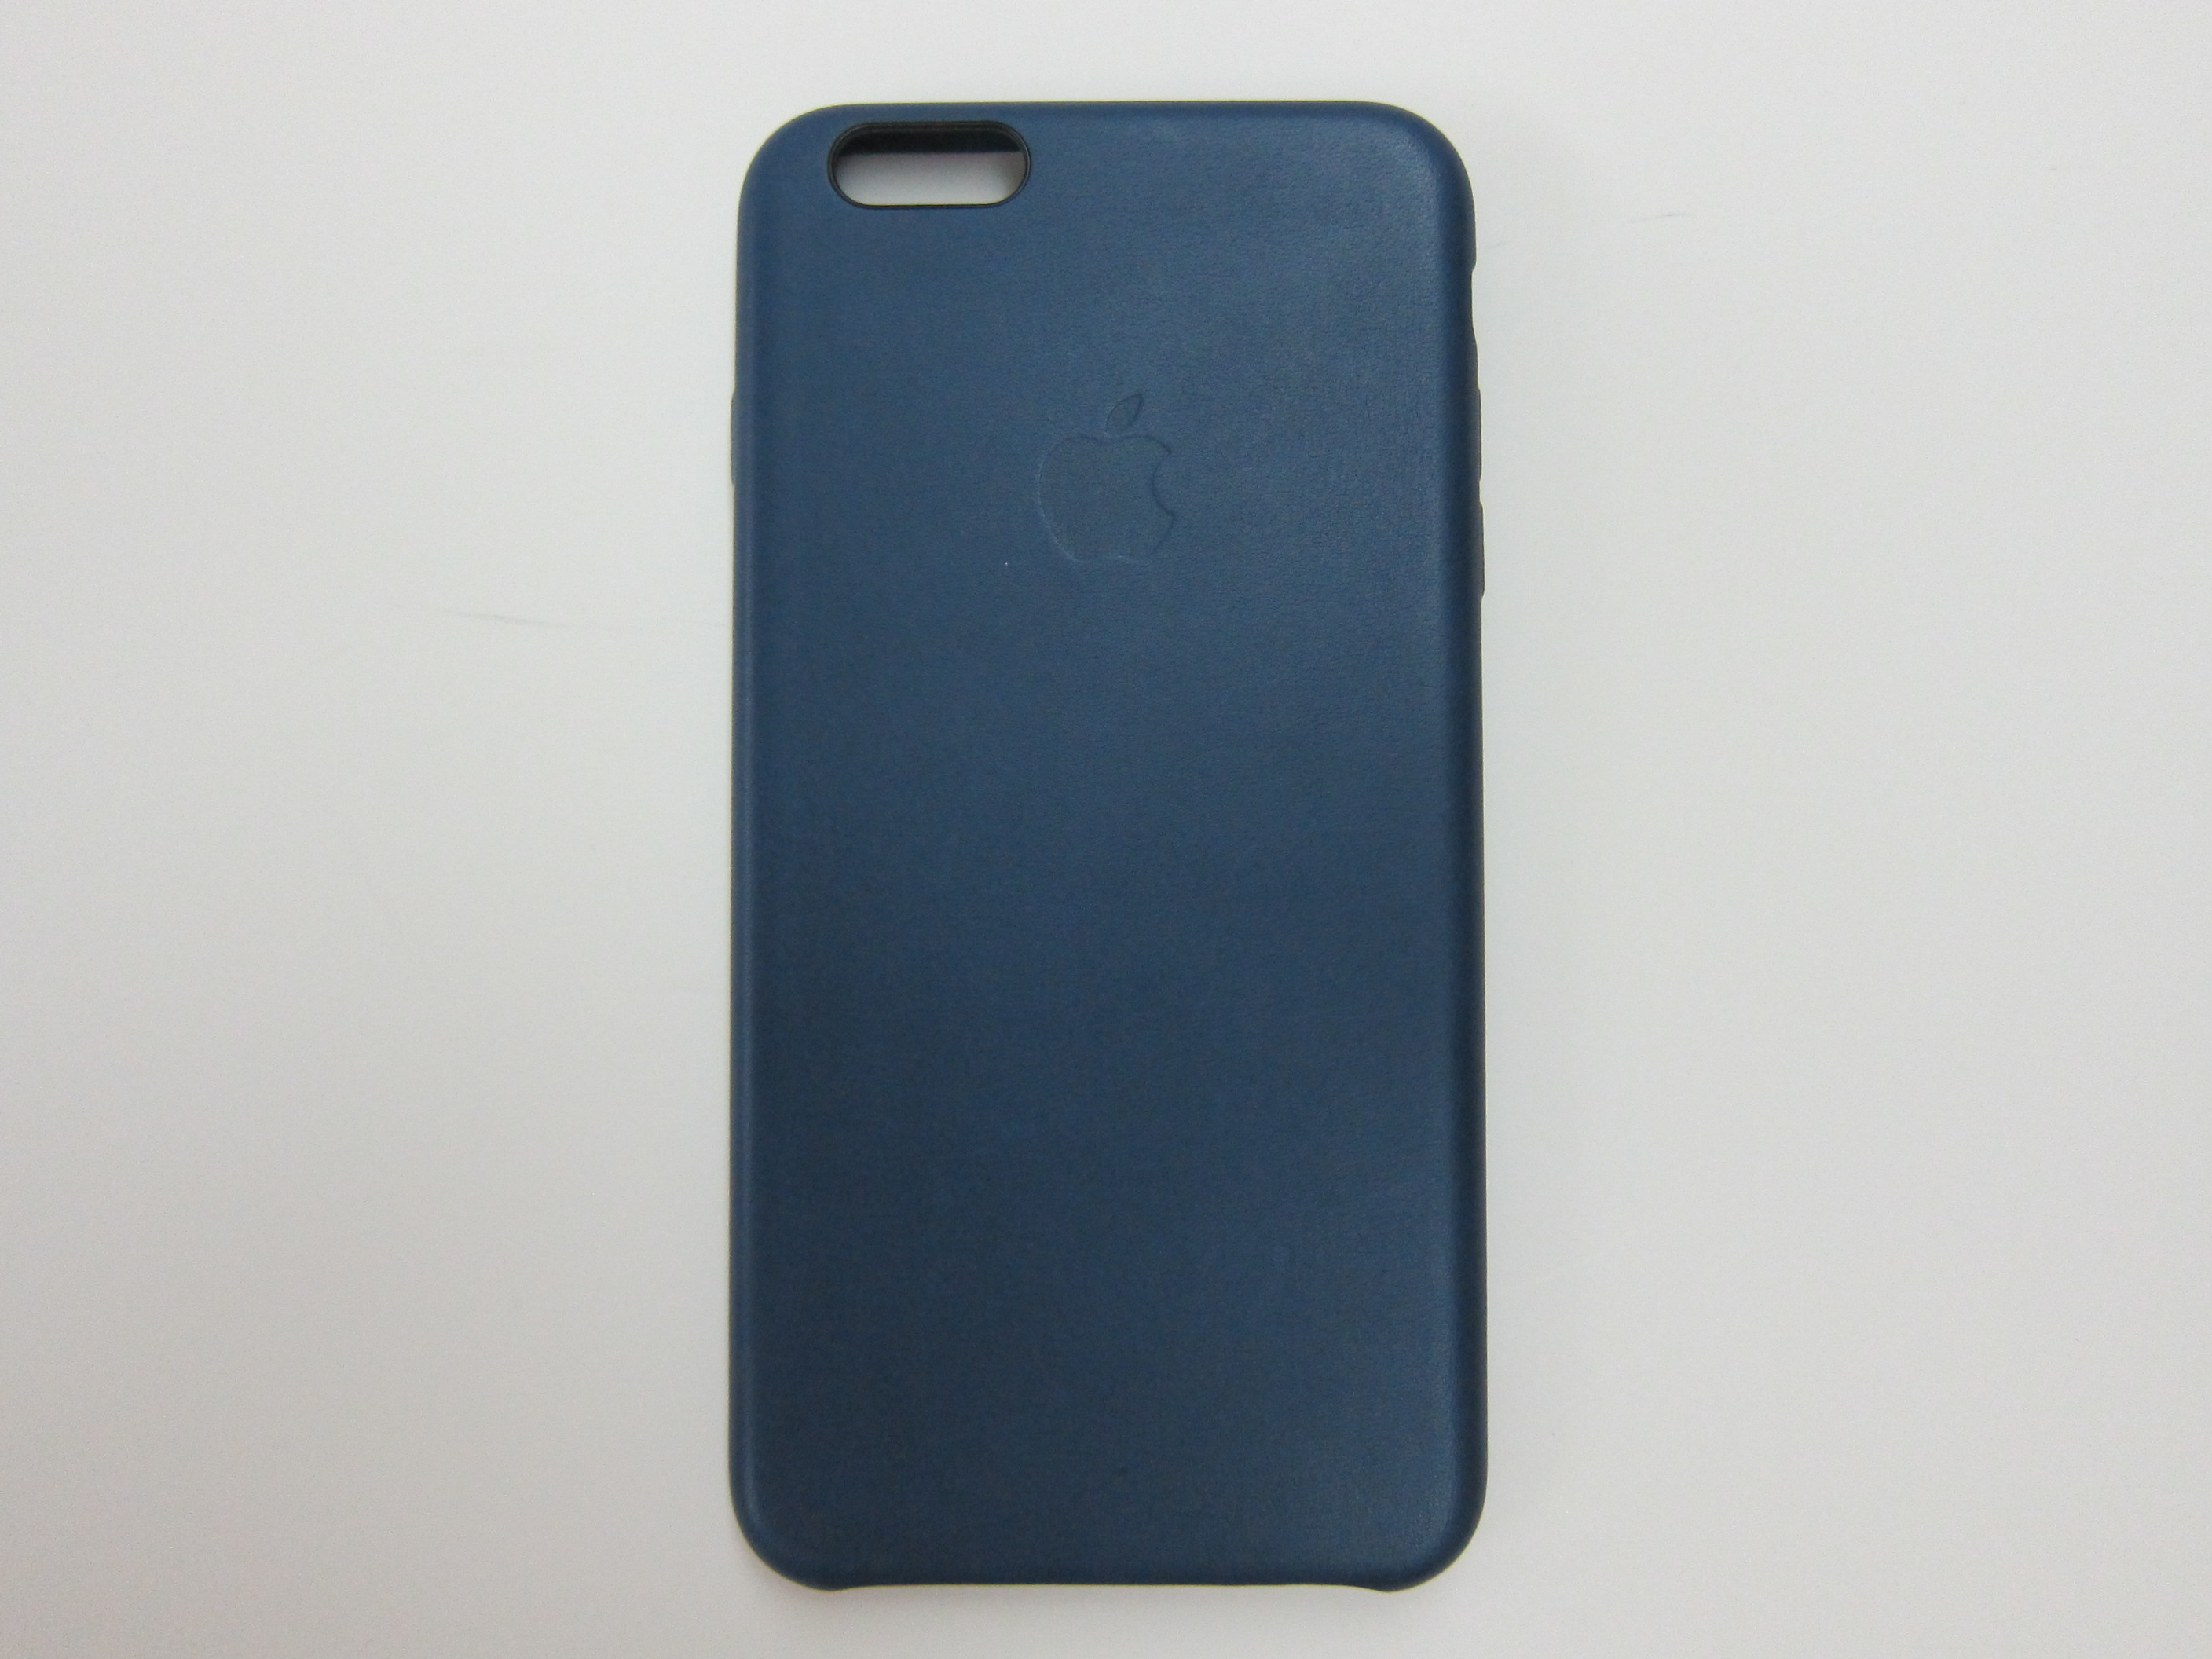 Apple iPhone 6s Plus Leather Case (Midnight Blue) « Blog ...